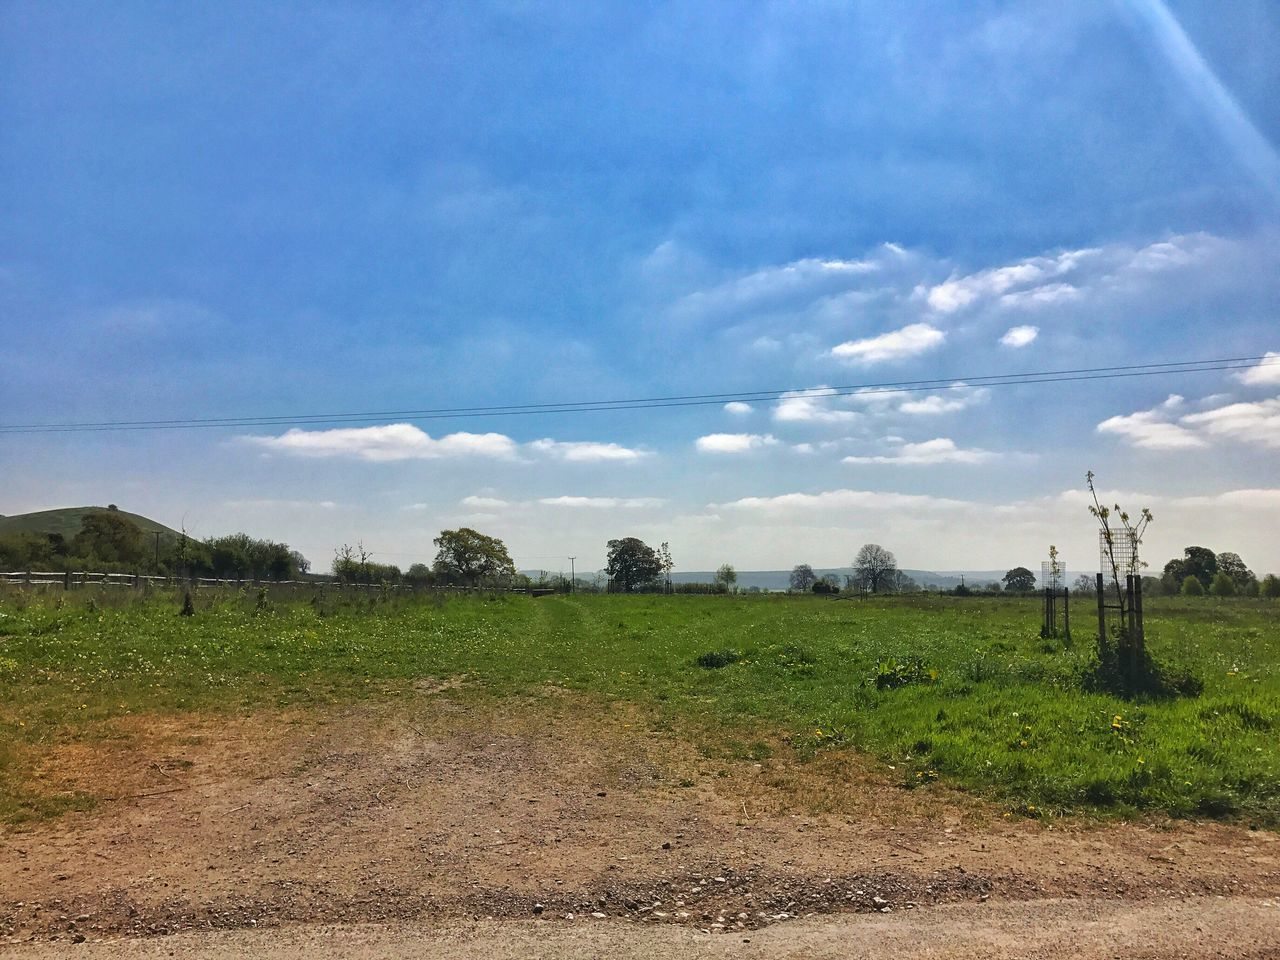 field, landscape, sky, cloud - sky, no people, agriculture, day, nature, outdoors, grass, beauty in nature, road, tree, scenics, electricity pylon